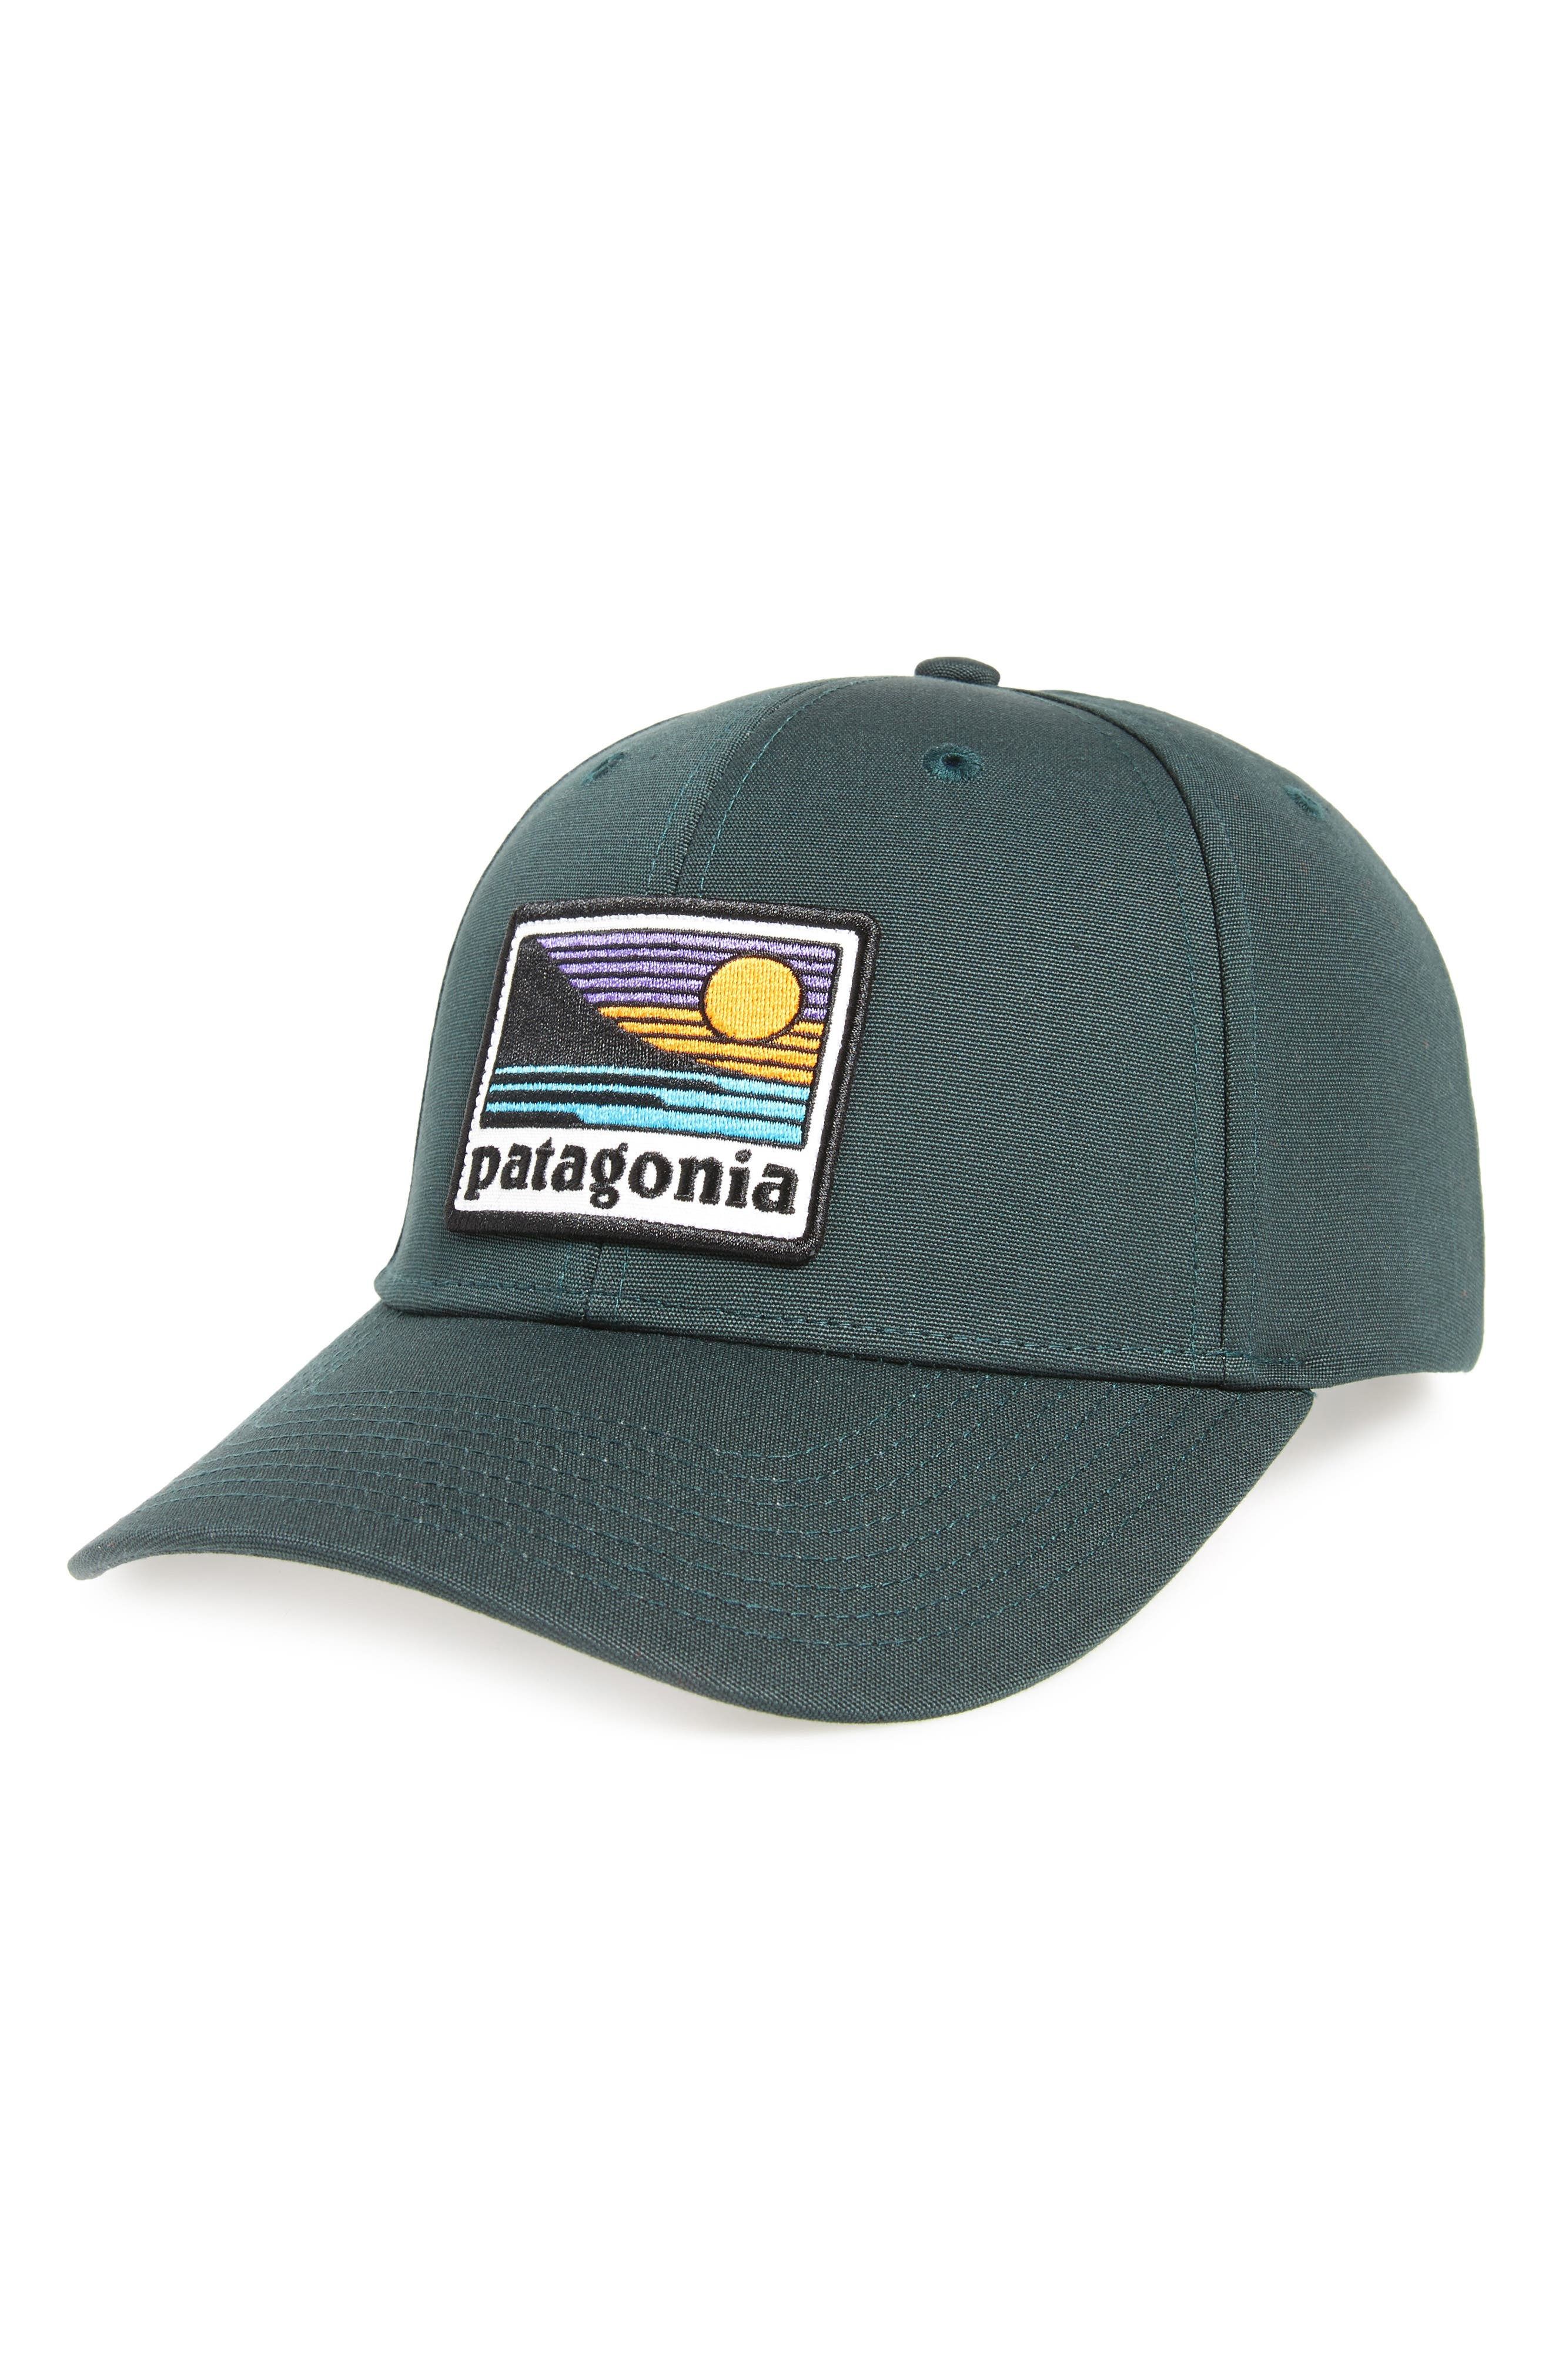 Up & Out Roger That Trucker Cap,                             Main thumbnail 1, color,                             021